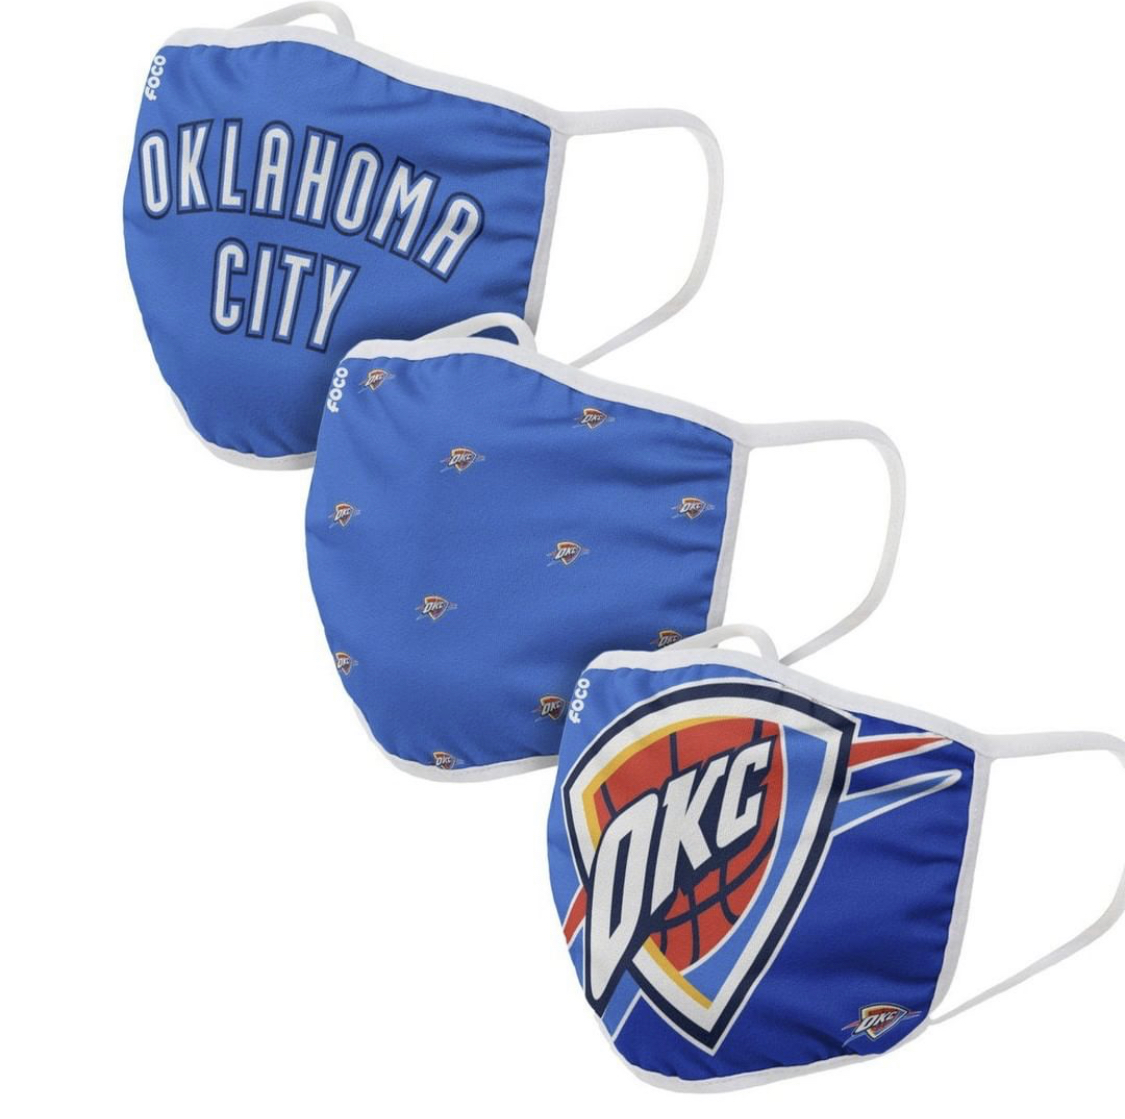 Get your Thunder face masks now at the @thundershop!  We will be donating 100% of the proceeds to the @rfbo and @okfoodbank. #ThunderCares  😷 | https://t.co/YoNohyBxBr https://t.co/HEyhXB9dJh